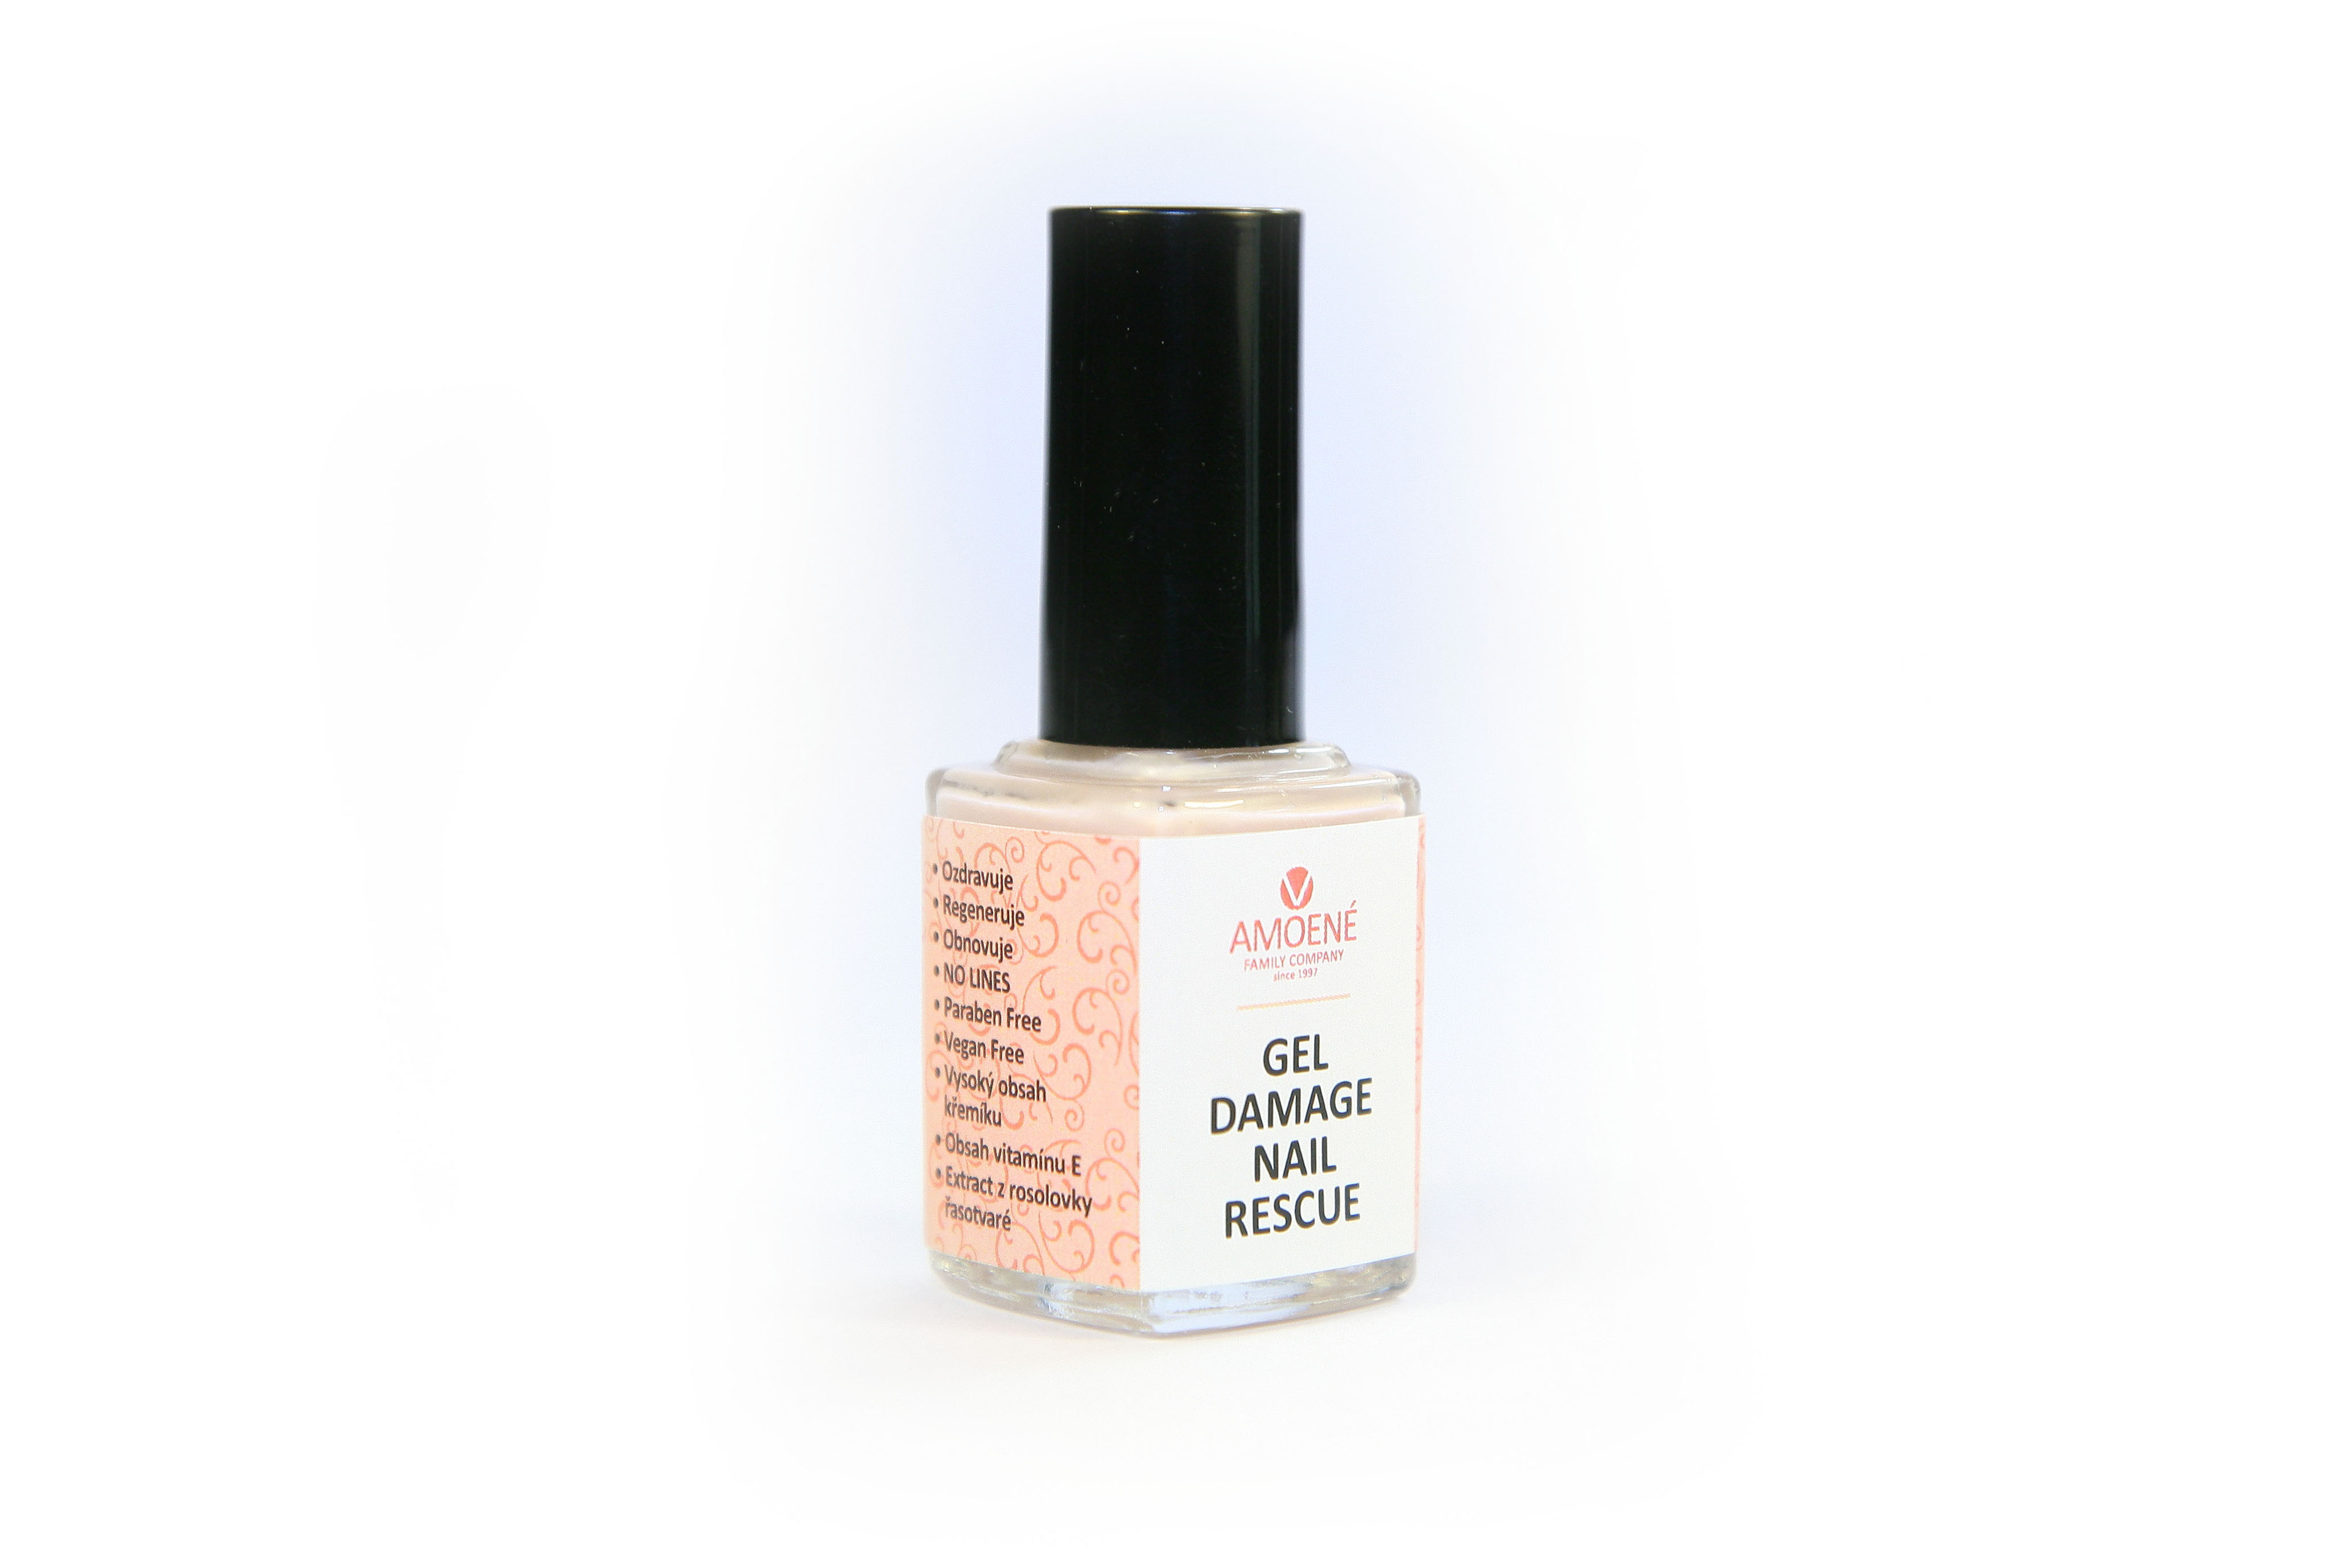 Gel demage nail rescue 12 ml